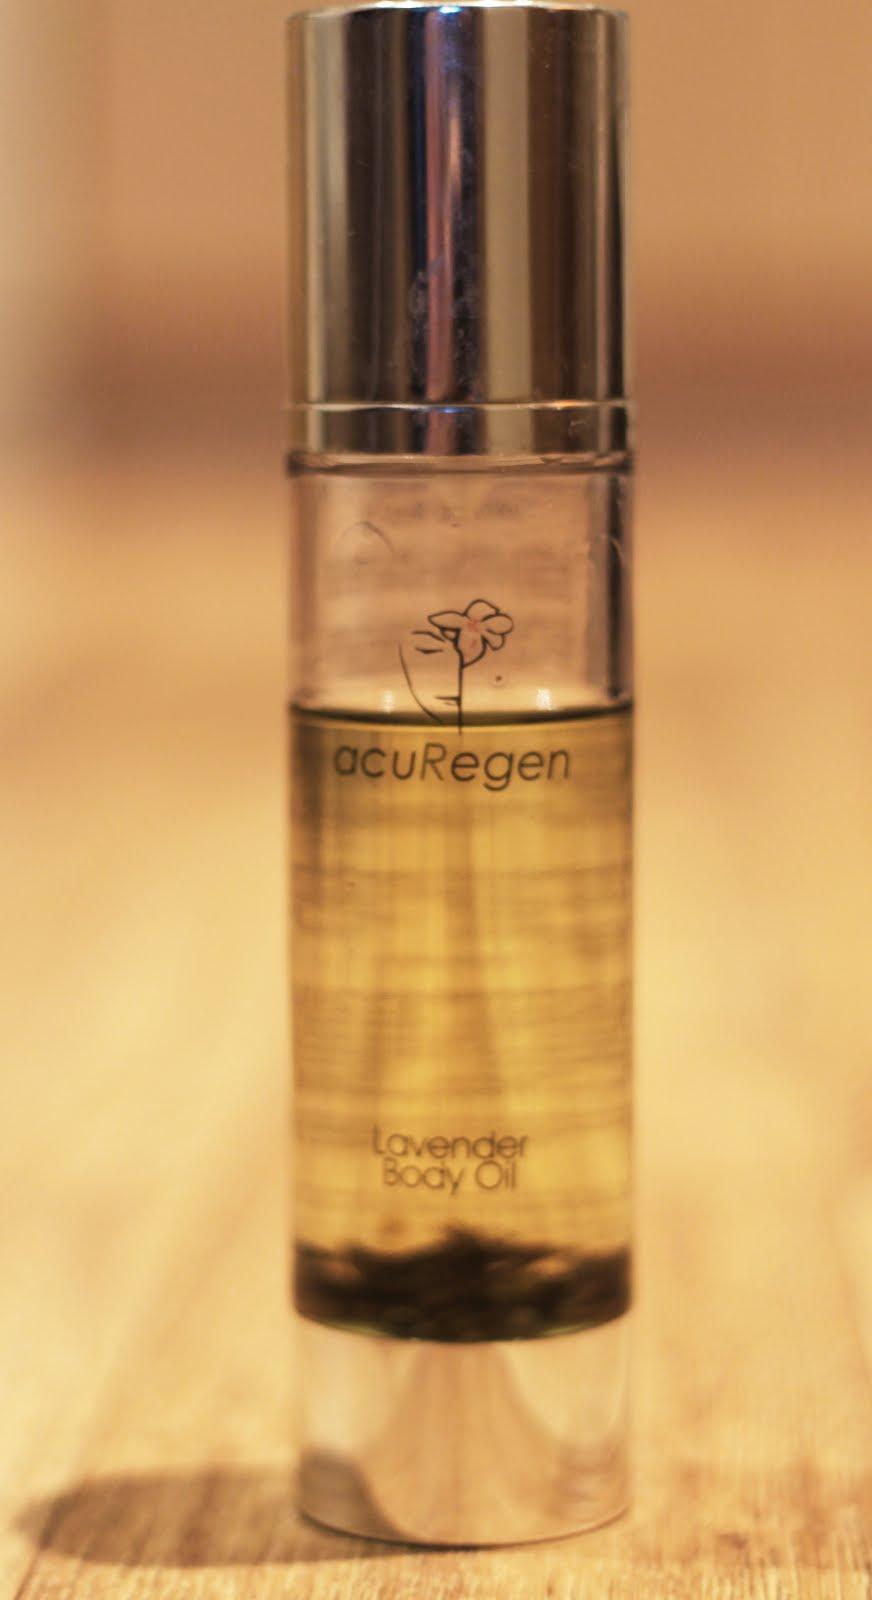 Smooth skin for winter - acuregen body oils